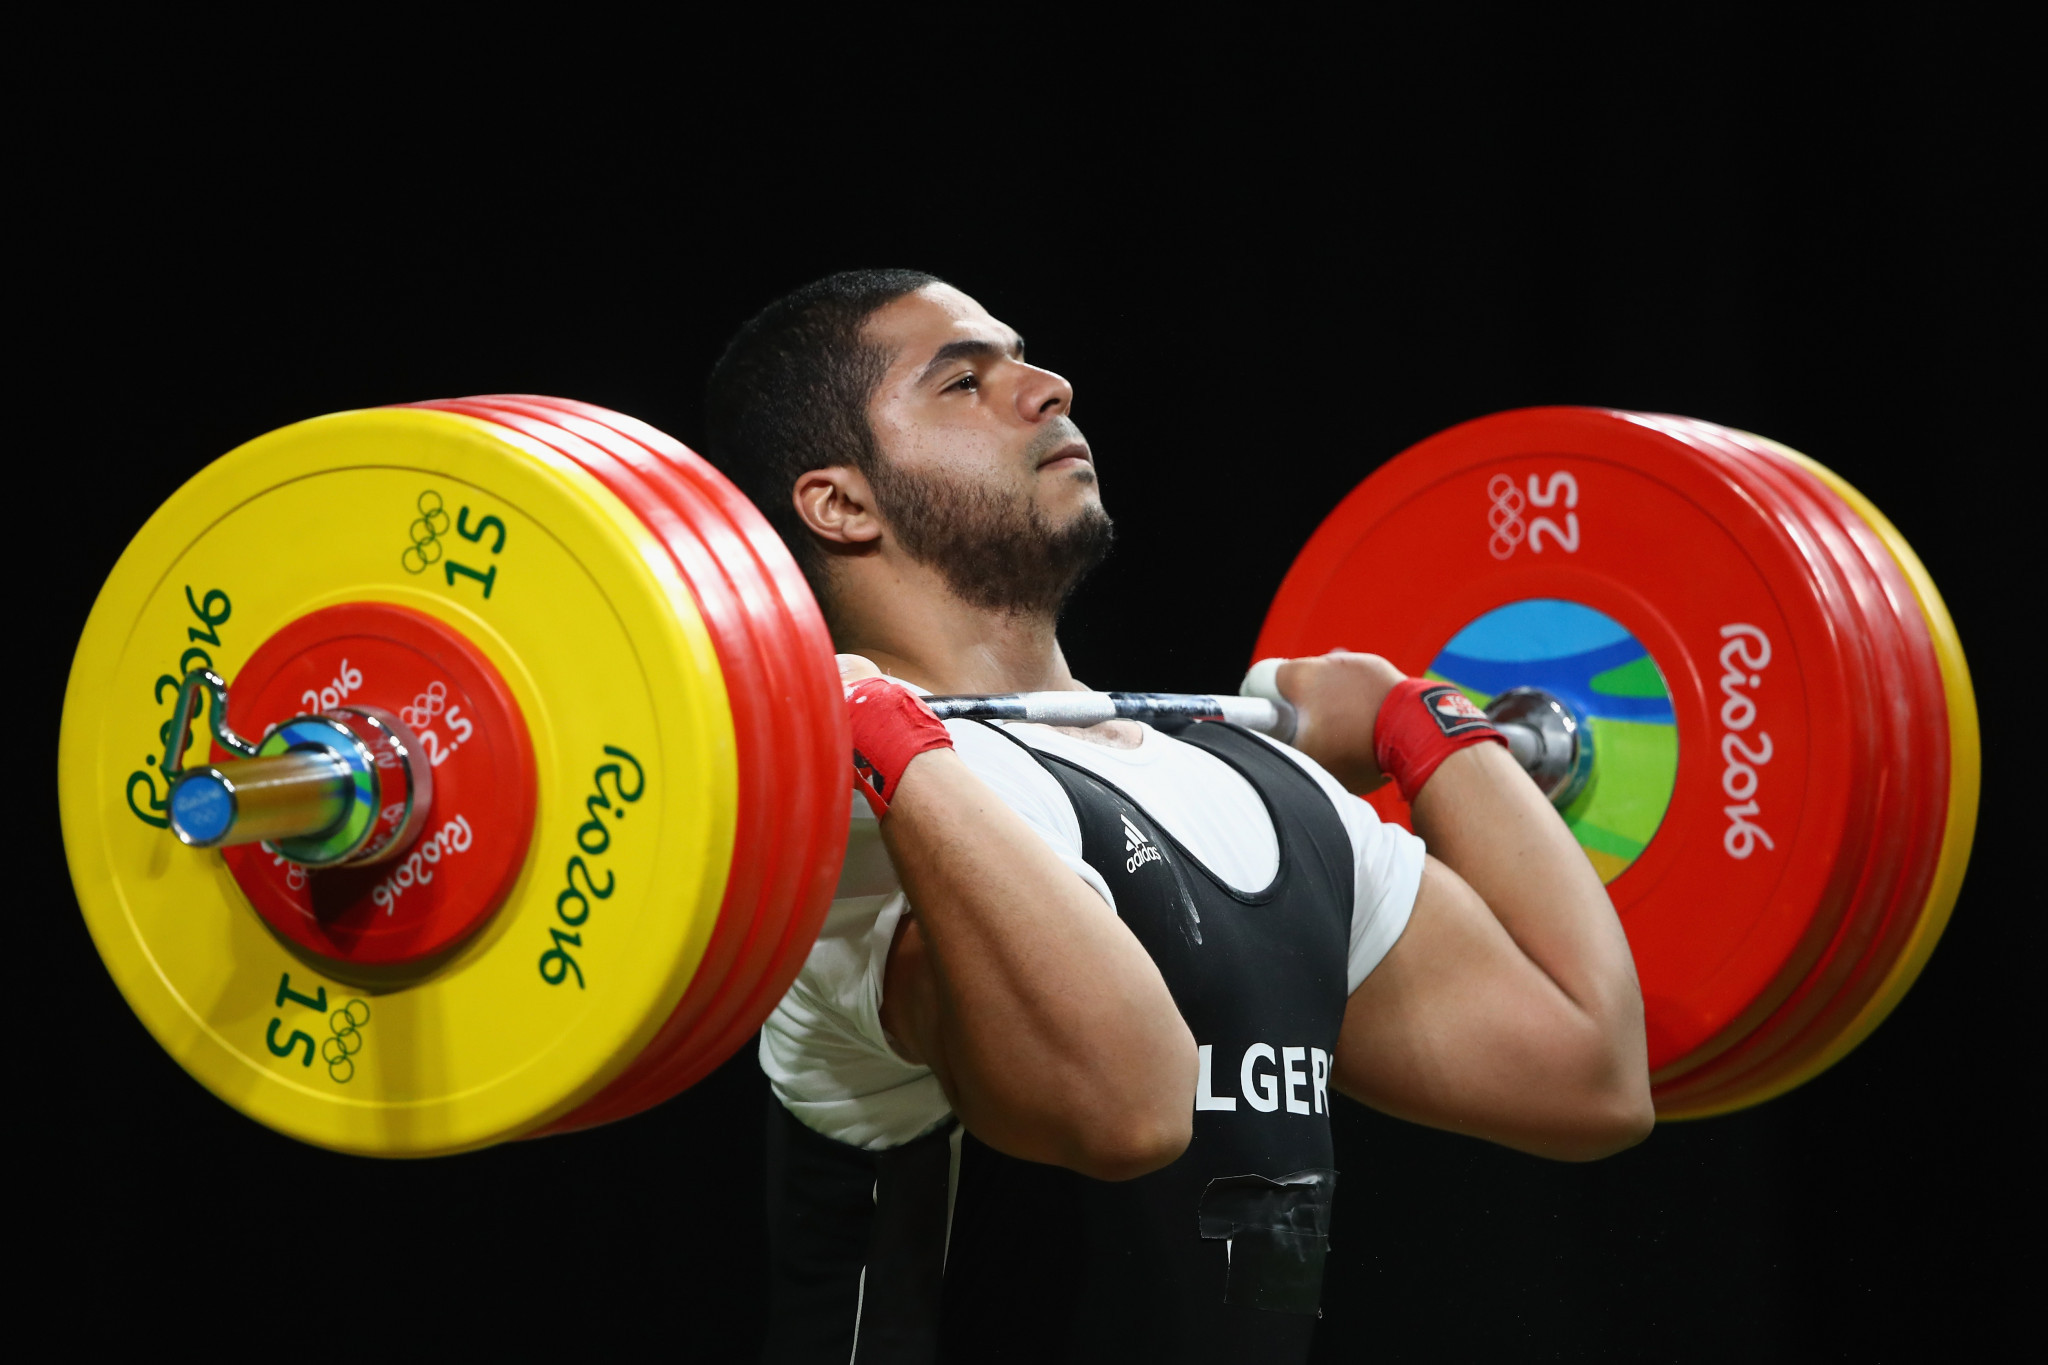 COVID-19 positive costs Algerian weightlifter Bidani chance of Olympic medal